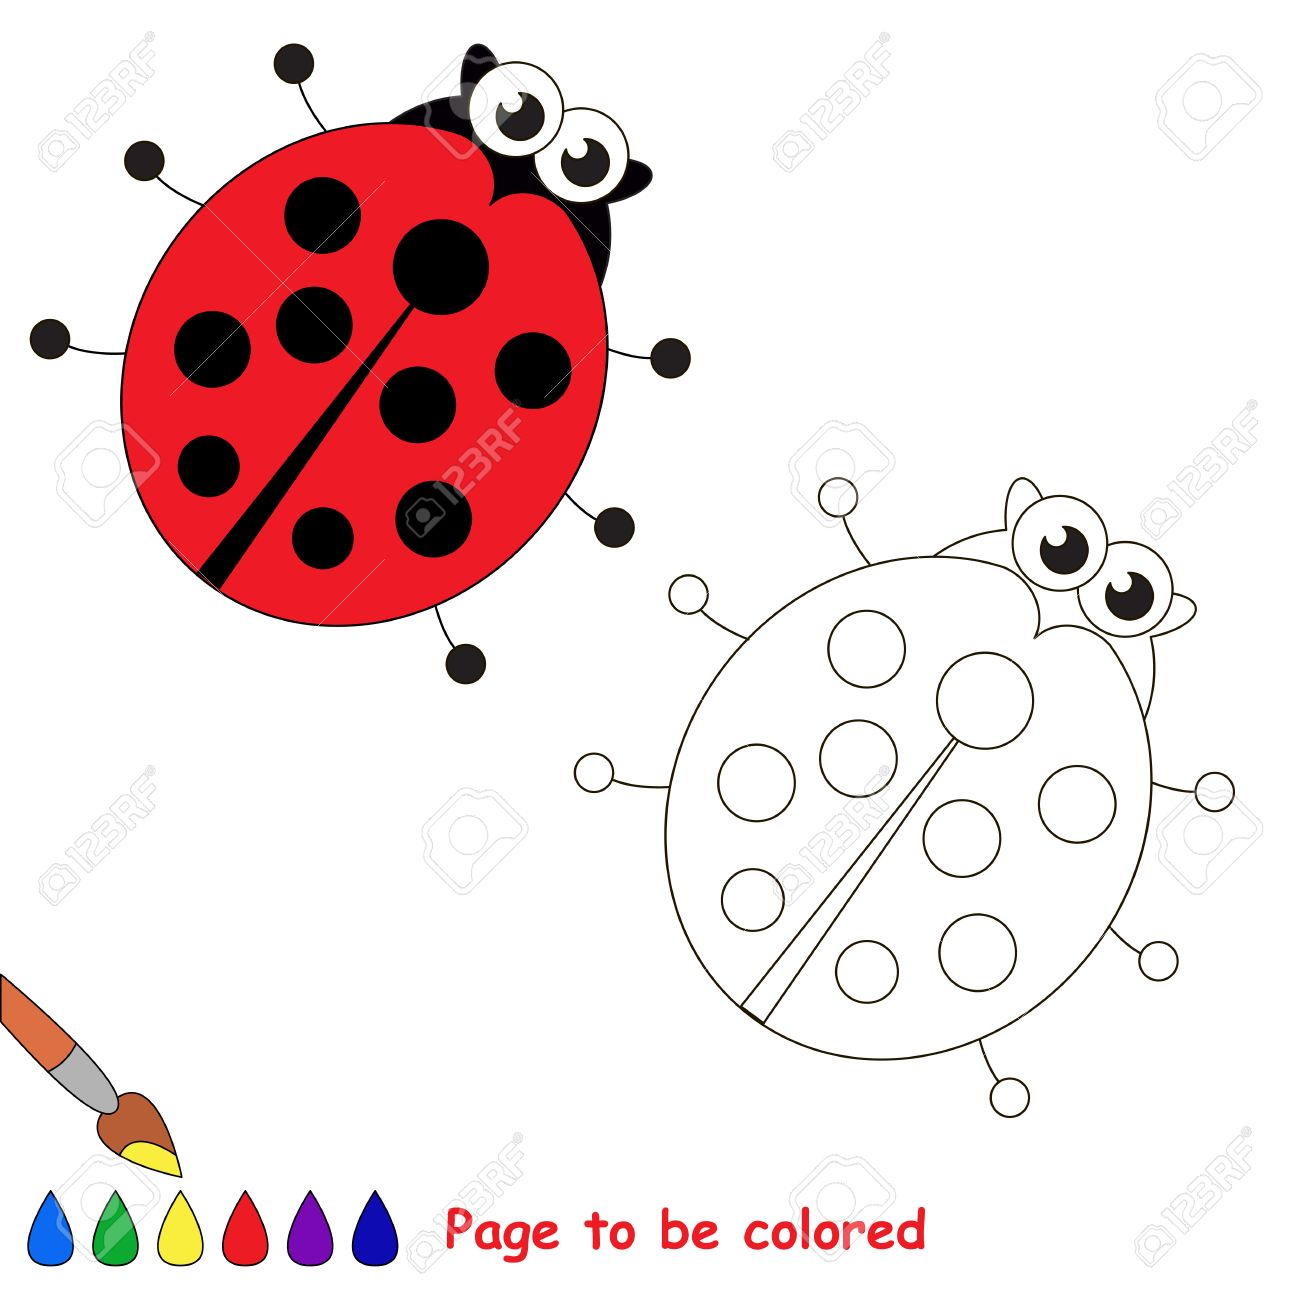 Ladybird To Be Colored Coloring Book To Educate Kids Learn Royalty Free Cliparts Vectors And Stock Illustration Image 60596506